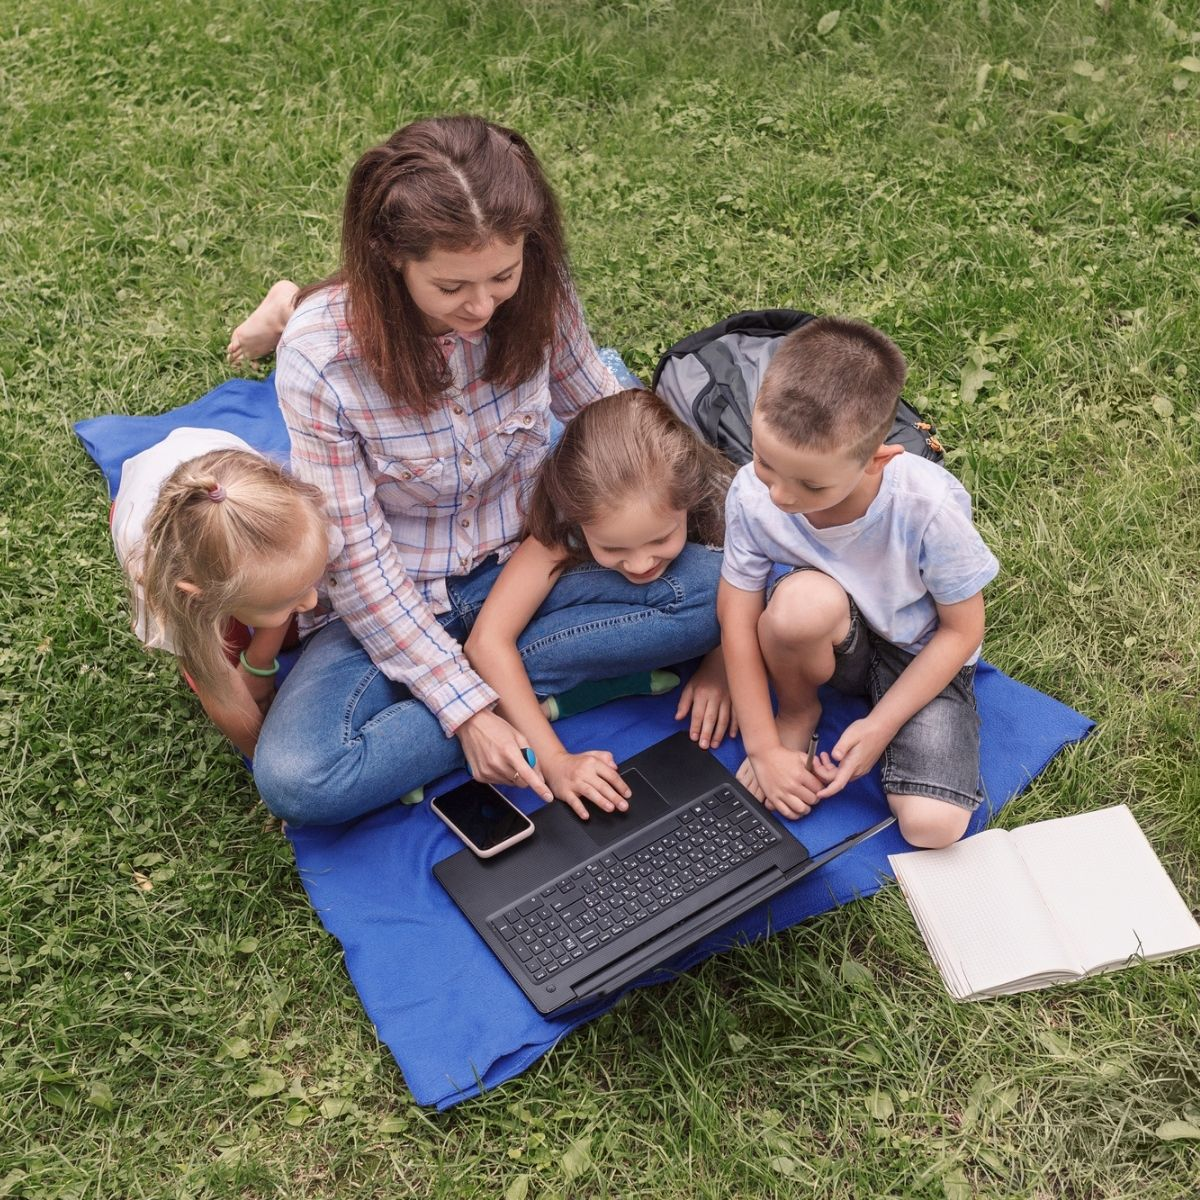 mom and kids outdoors on a laptop planning a day trip